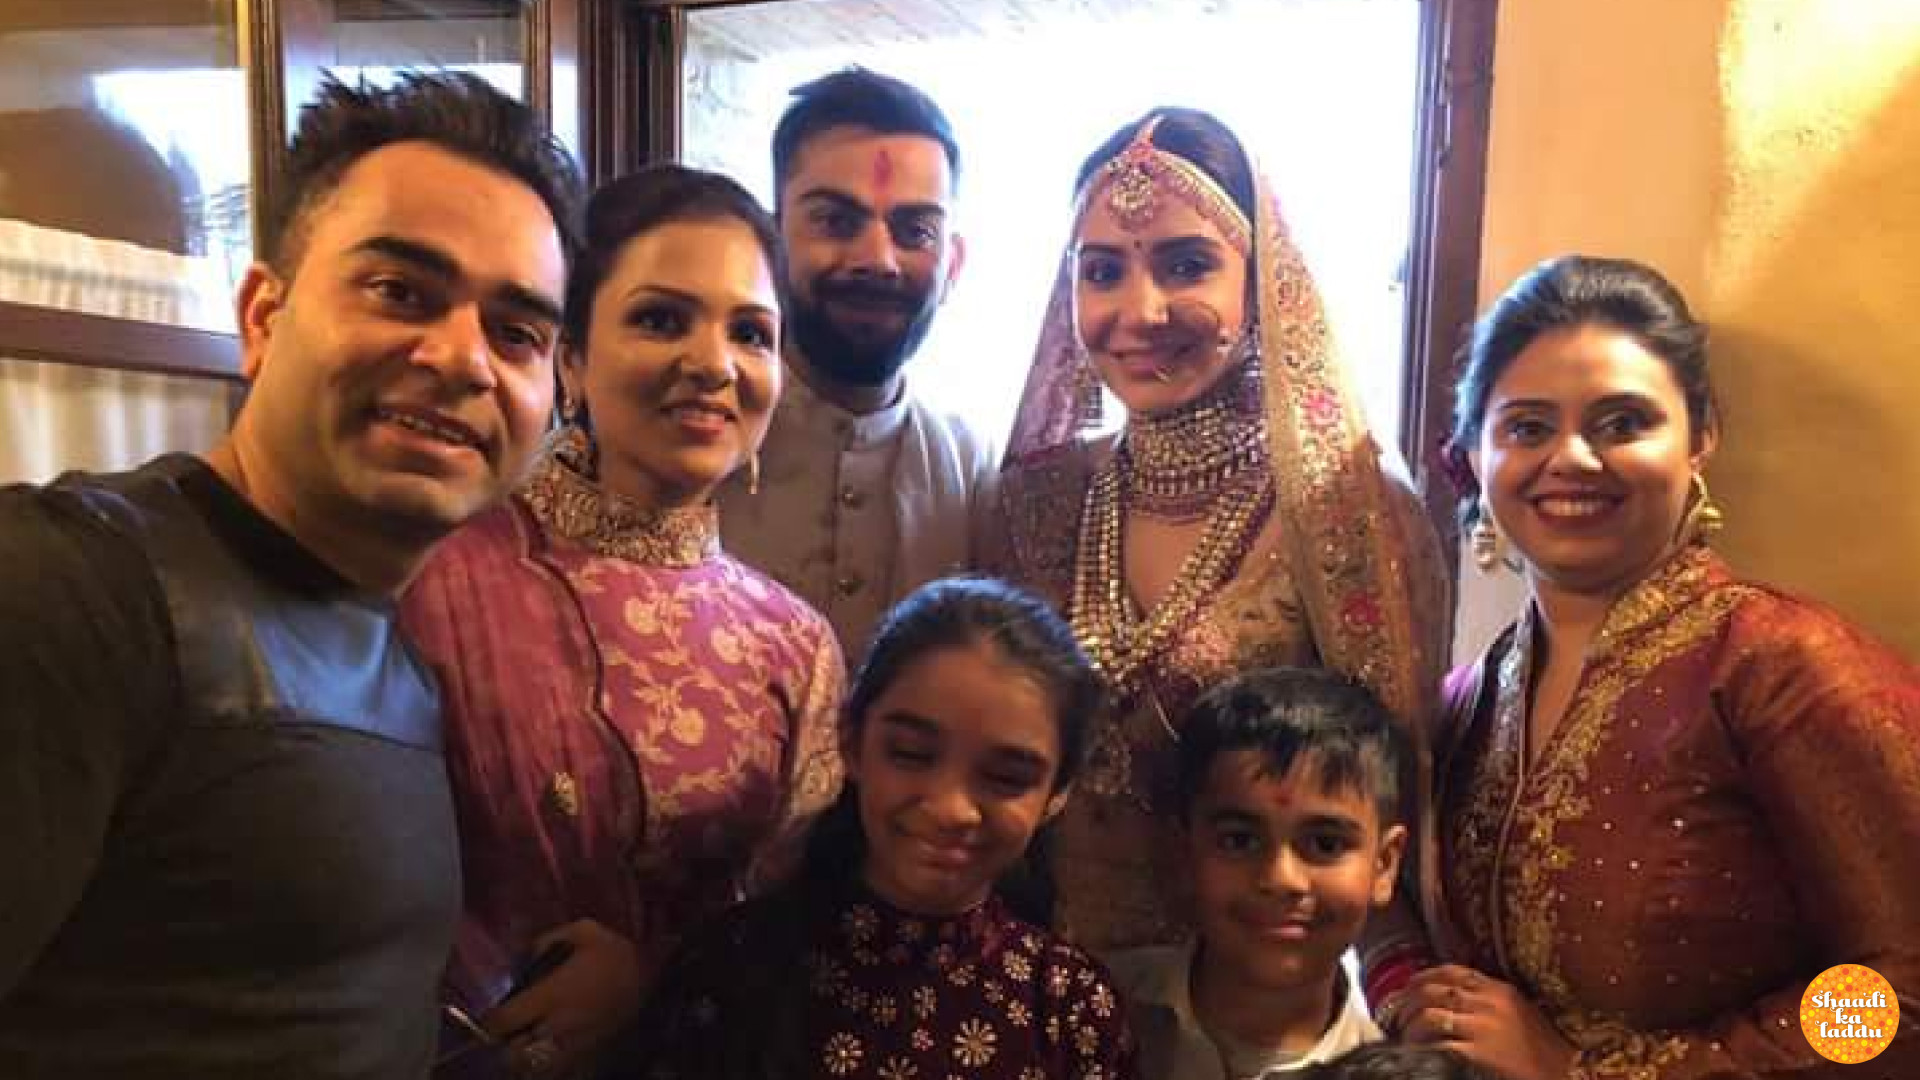 Virushkas smiles say it all as they exchange vows for a life-time